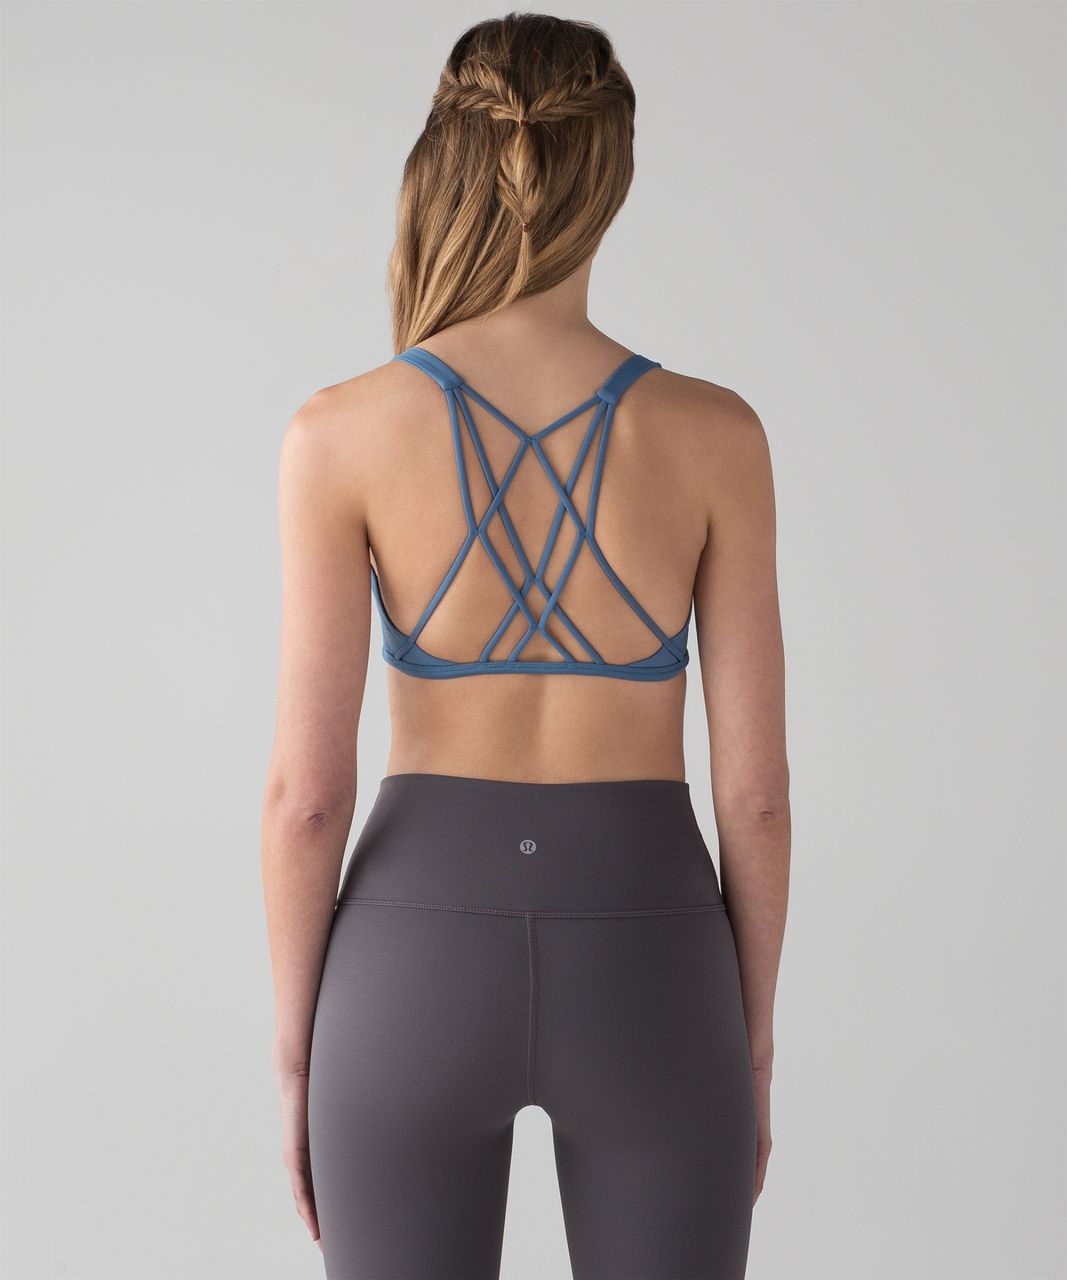 899eb33454 Lululemon Free To Be Zen Bra - Illuminight - lulu fanatics